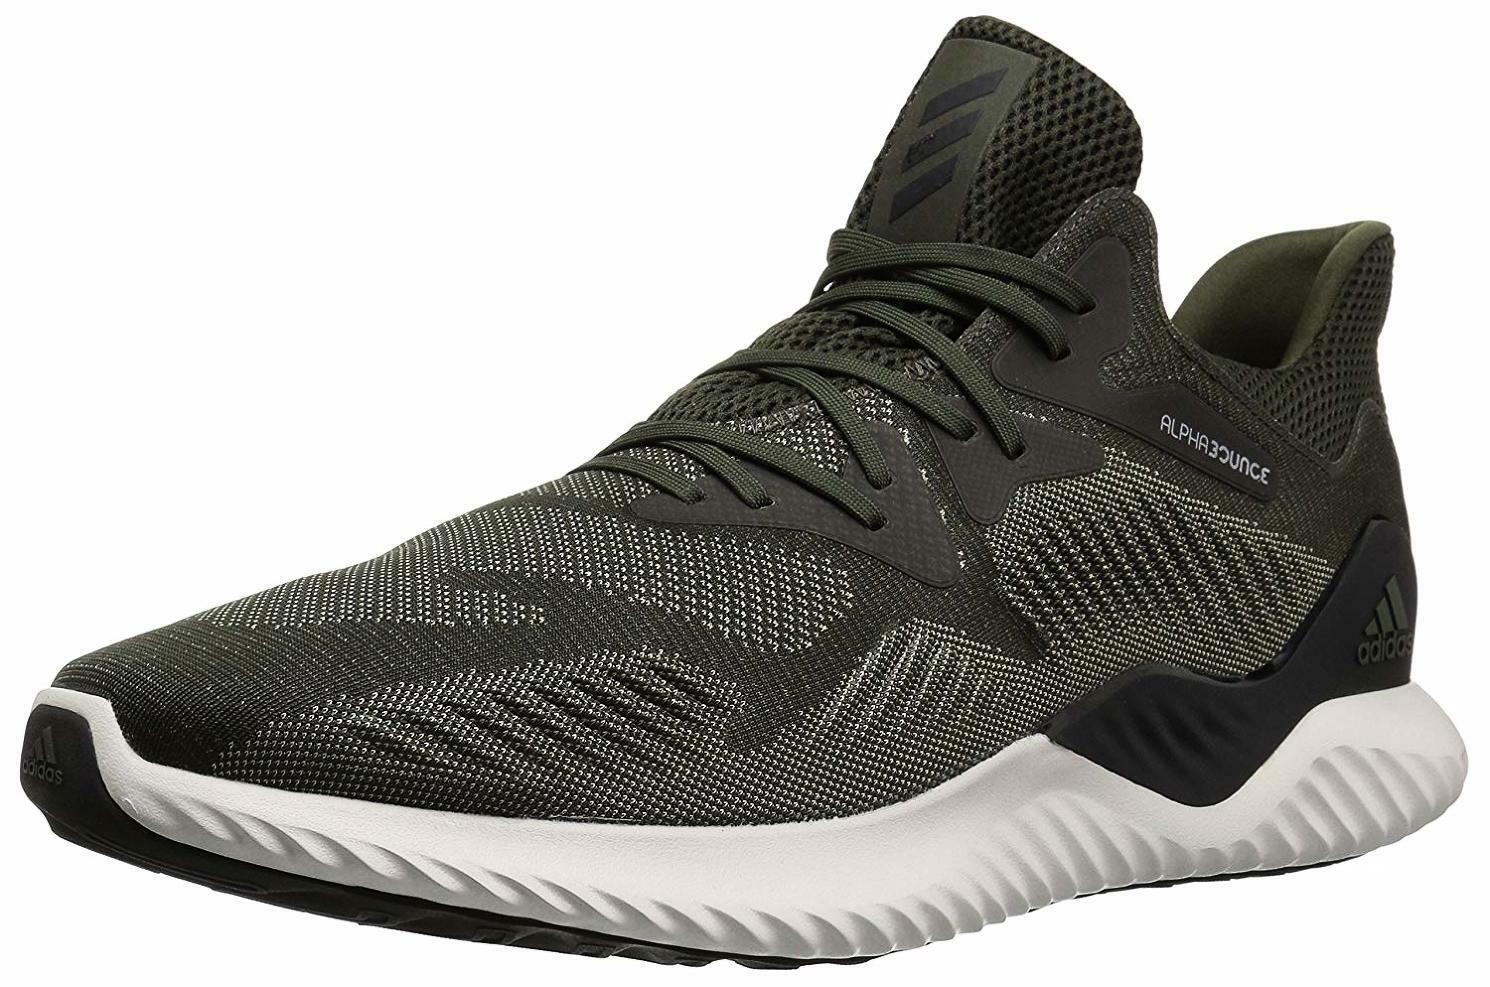 Adidas Alphabounce 2 M Running shoes - Choose SZ color